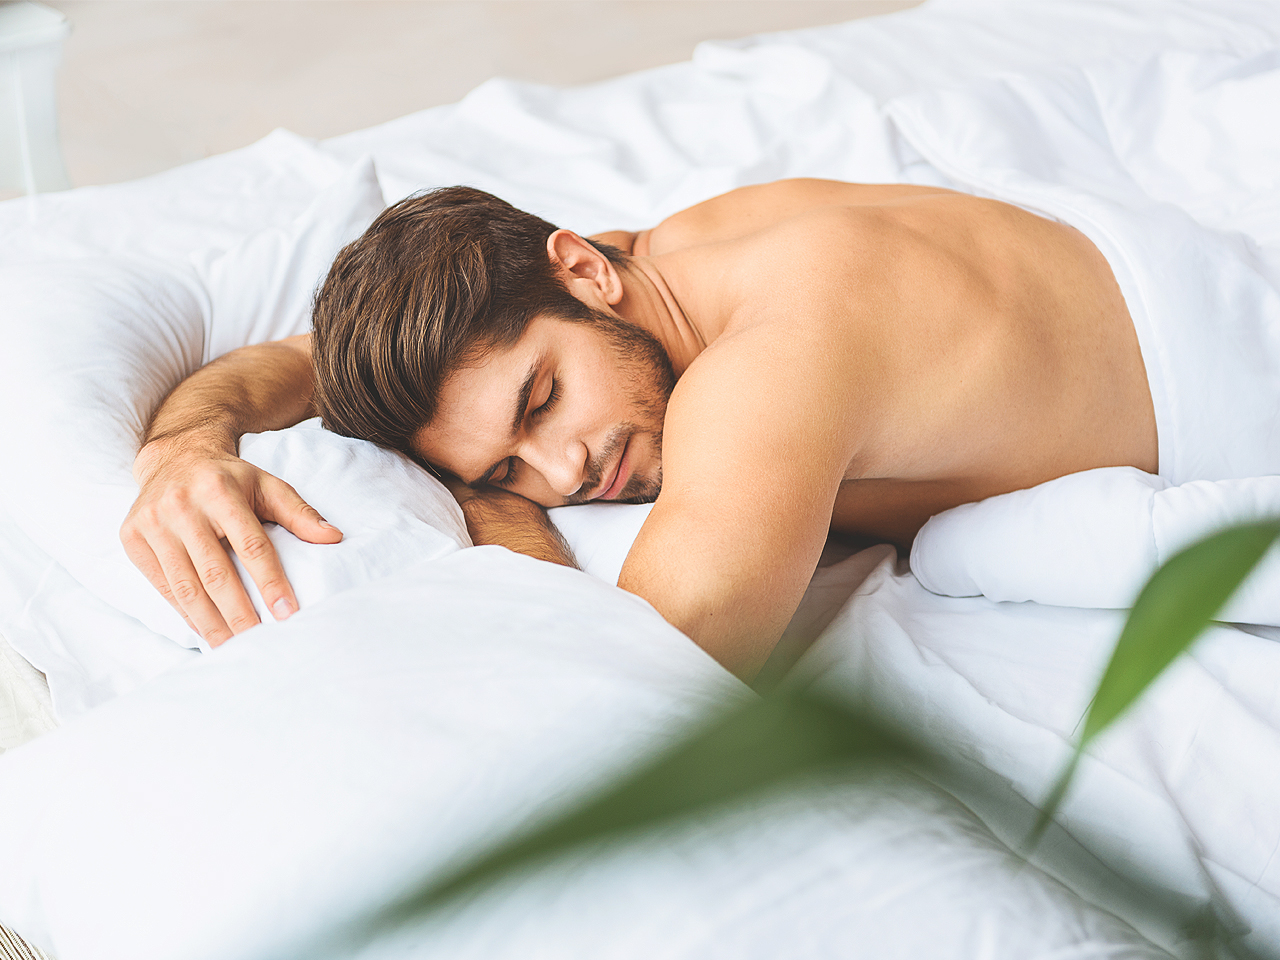 Sex sleepy does why make me What to